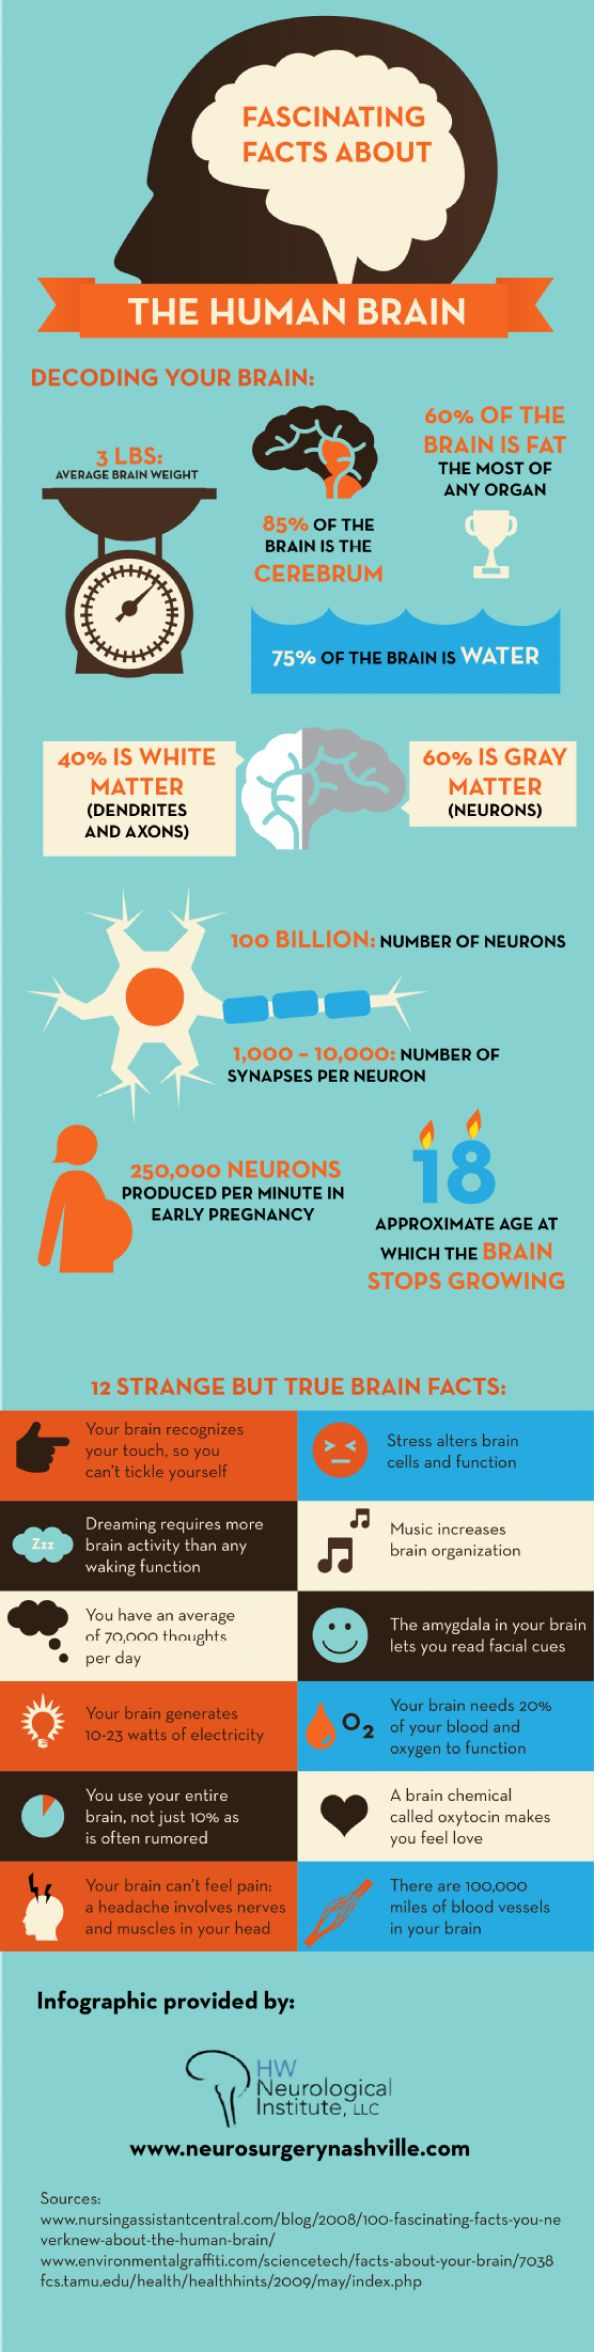 113 best brains images on pinterest neurology neuroscience and fascinating facts about the human brain infographic science neuron stress fandeluxe Image collections